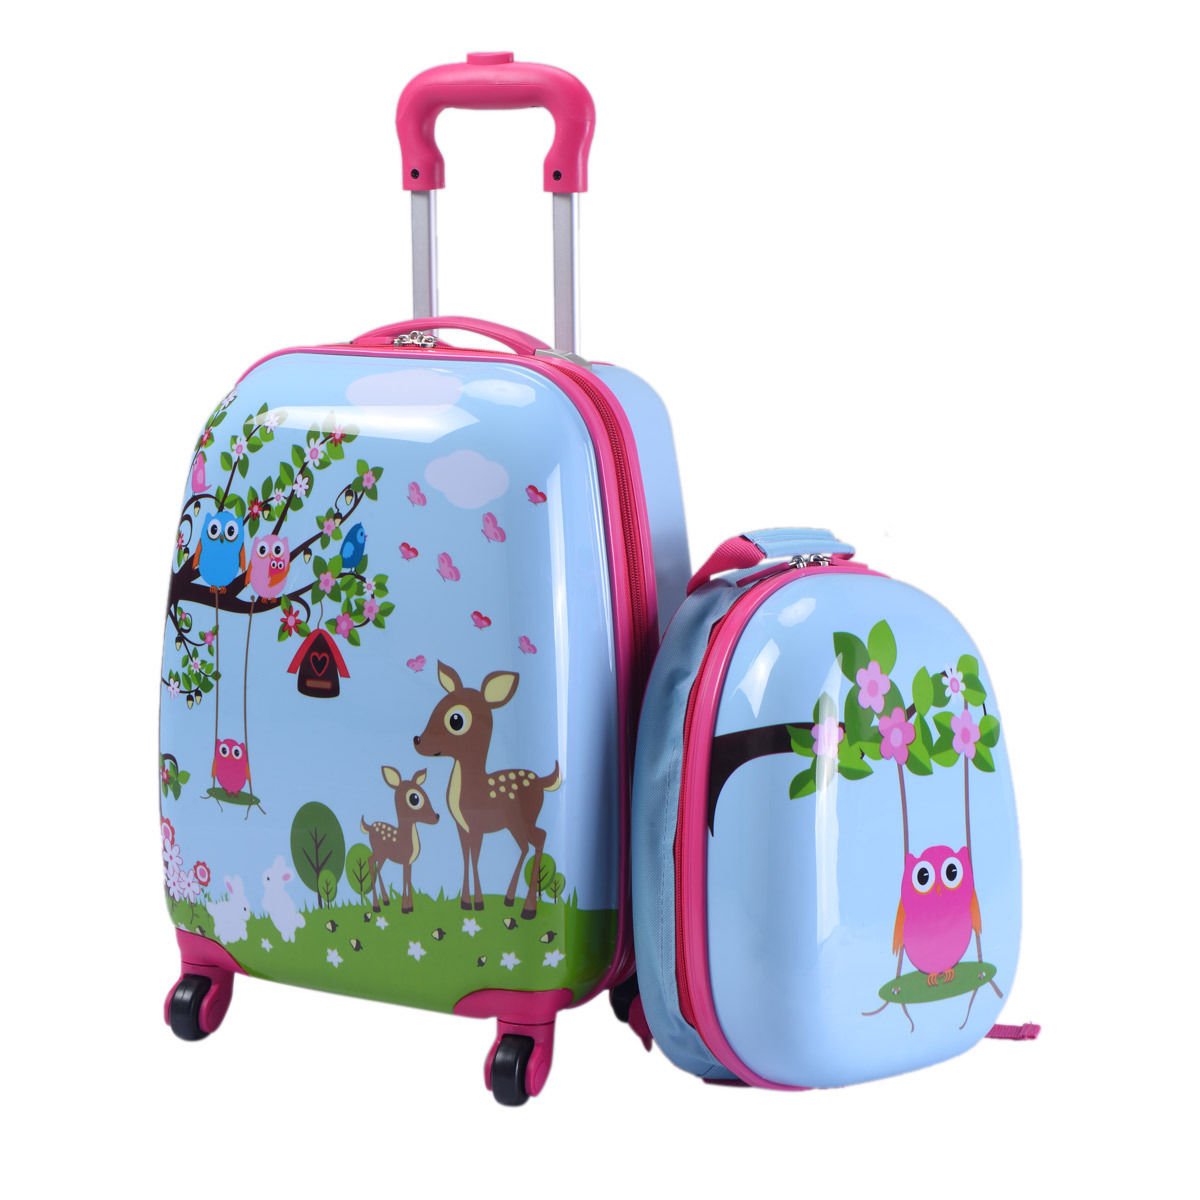 Costway 2Pc 12'' 16'' Kids Luggage Set Suitcase Backpack ...